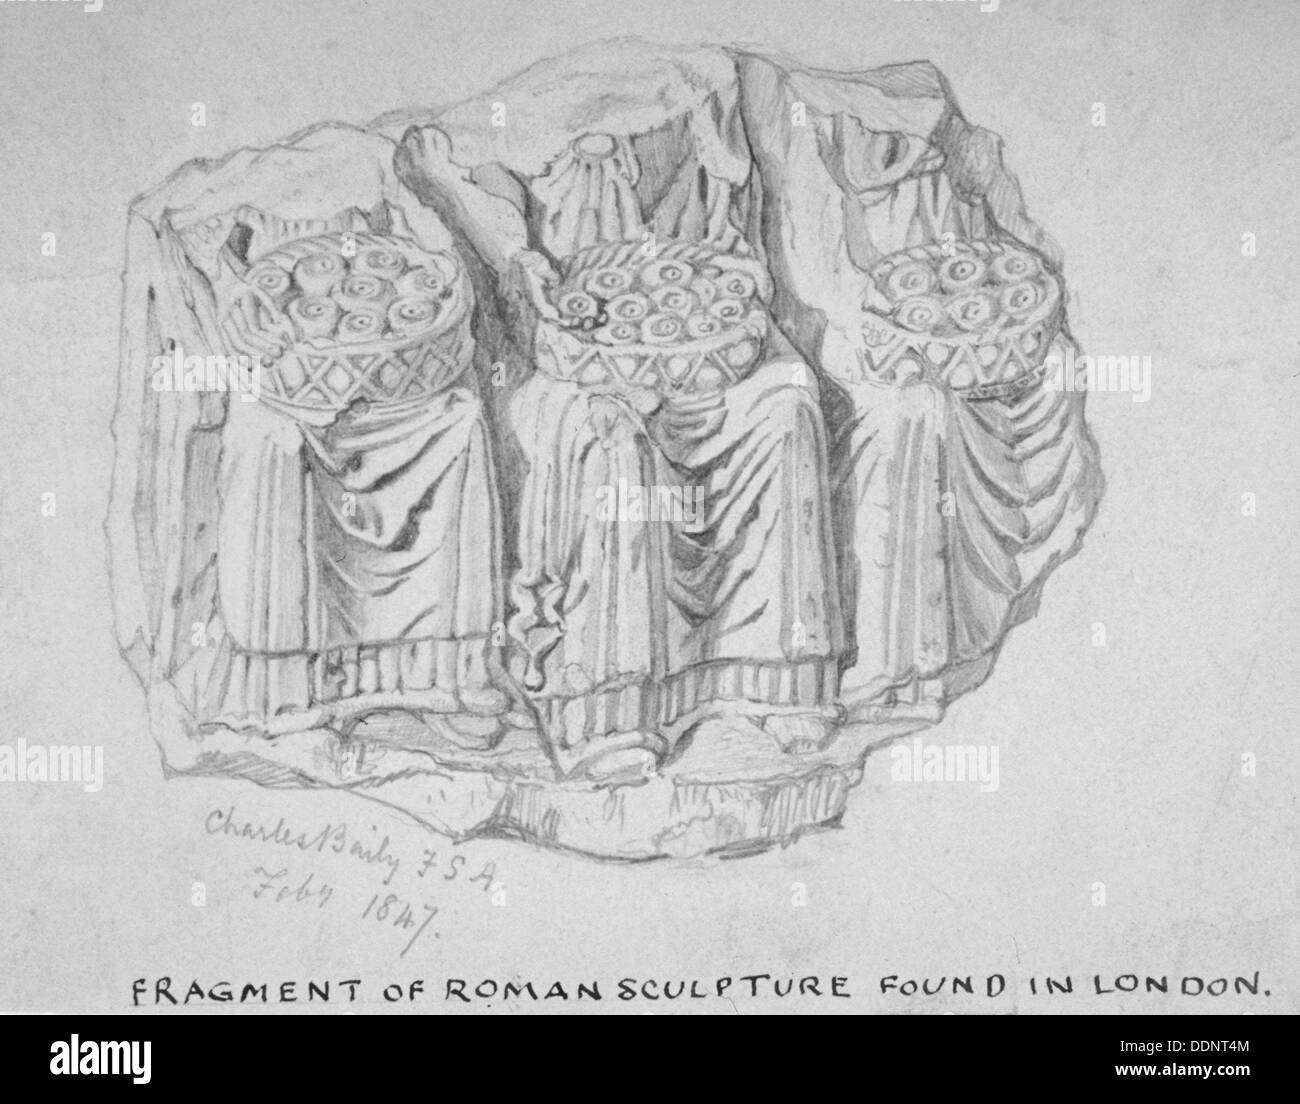 Fragment of Roman sculpture found in Hart Street, Crutched Friars, City of London, 1847. Artist: Charles Baily - Stock Image